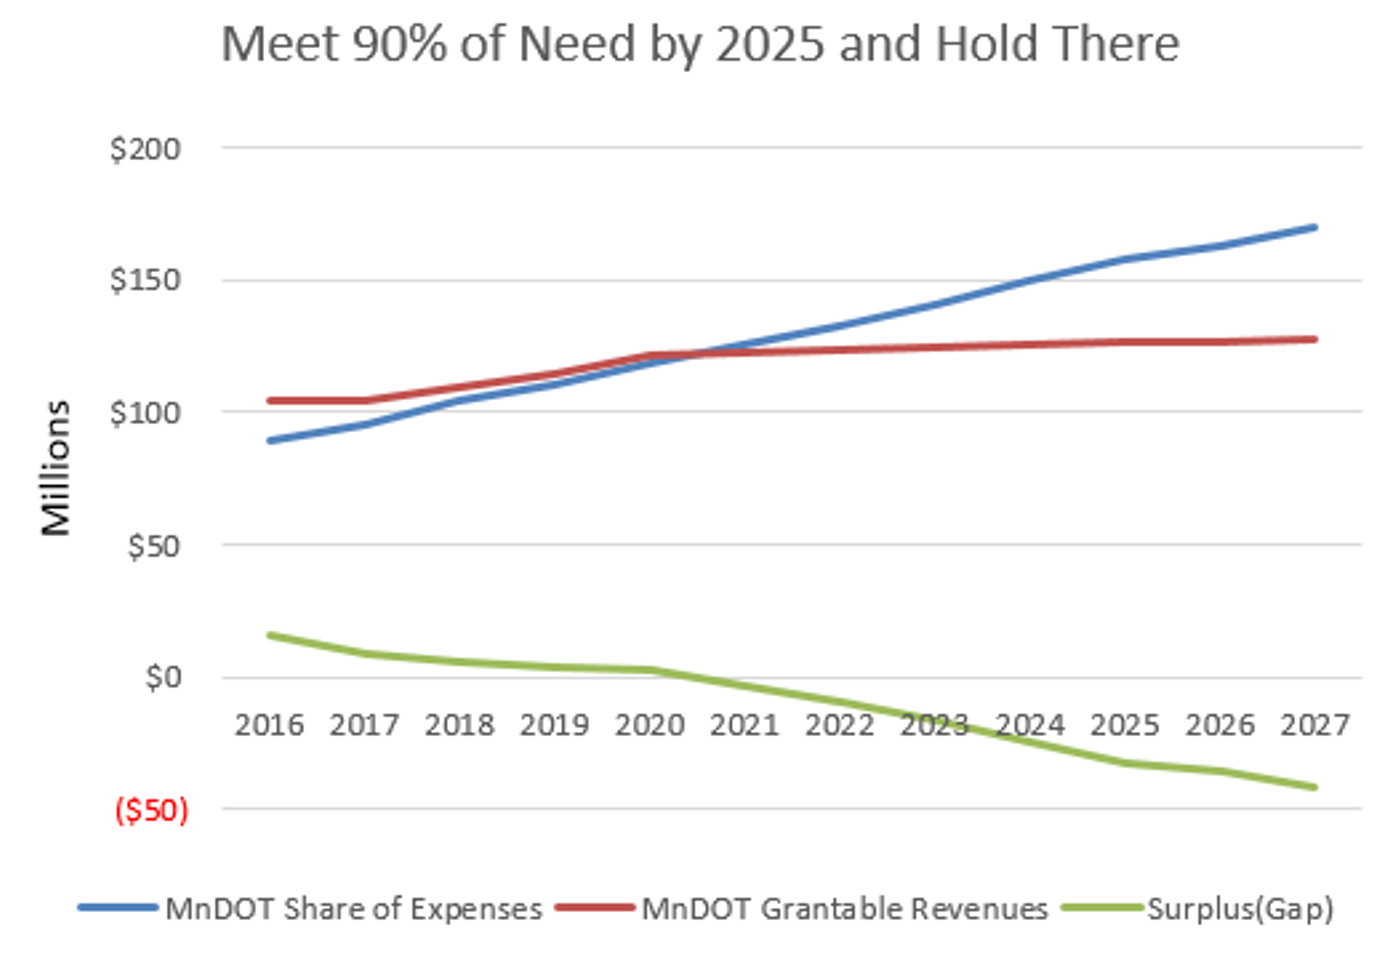 Graph of Program Expenses and Cost Gap